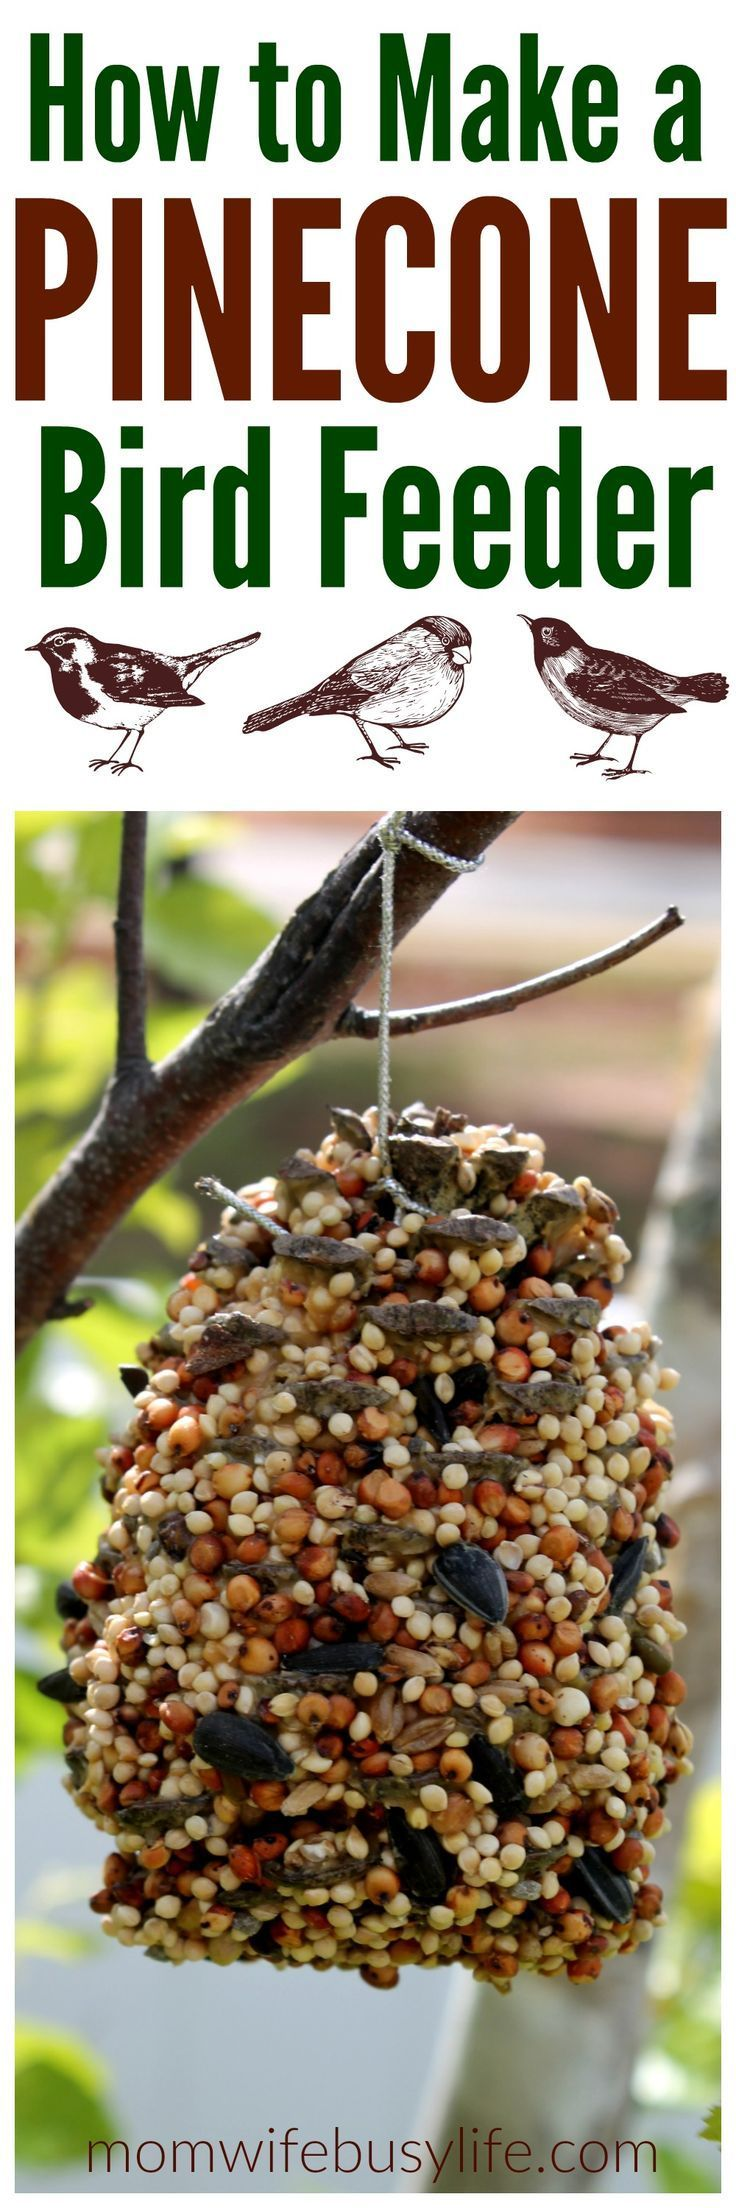 plans in stock photo of mesh wire cage image bird wildlife feeder peanut